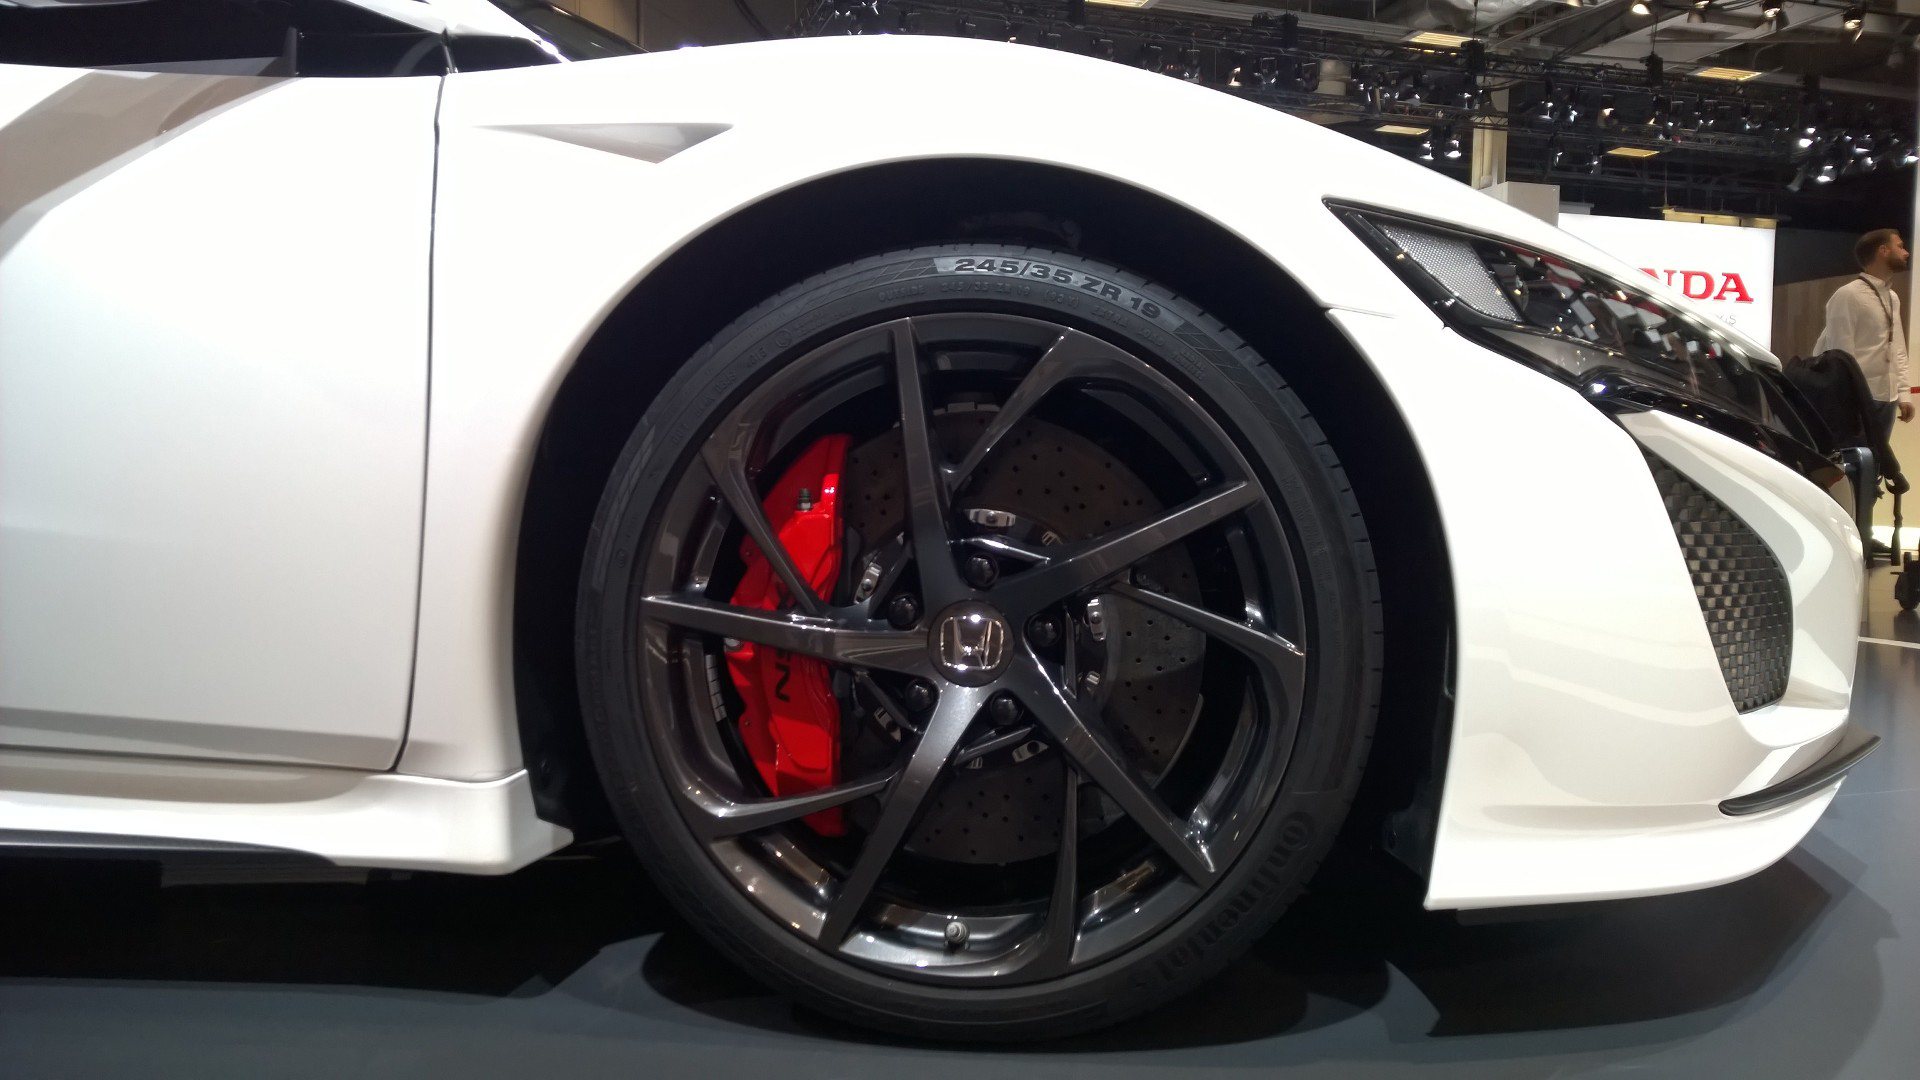 Honda NSX - jante / wheel - 2016 - Mondial Auto - photo ELJ DM